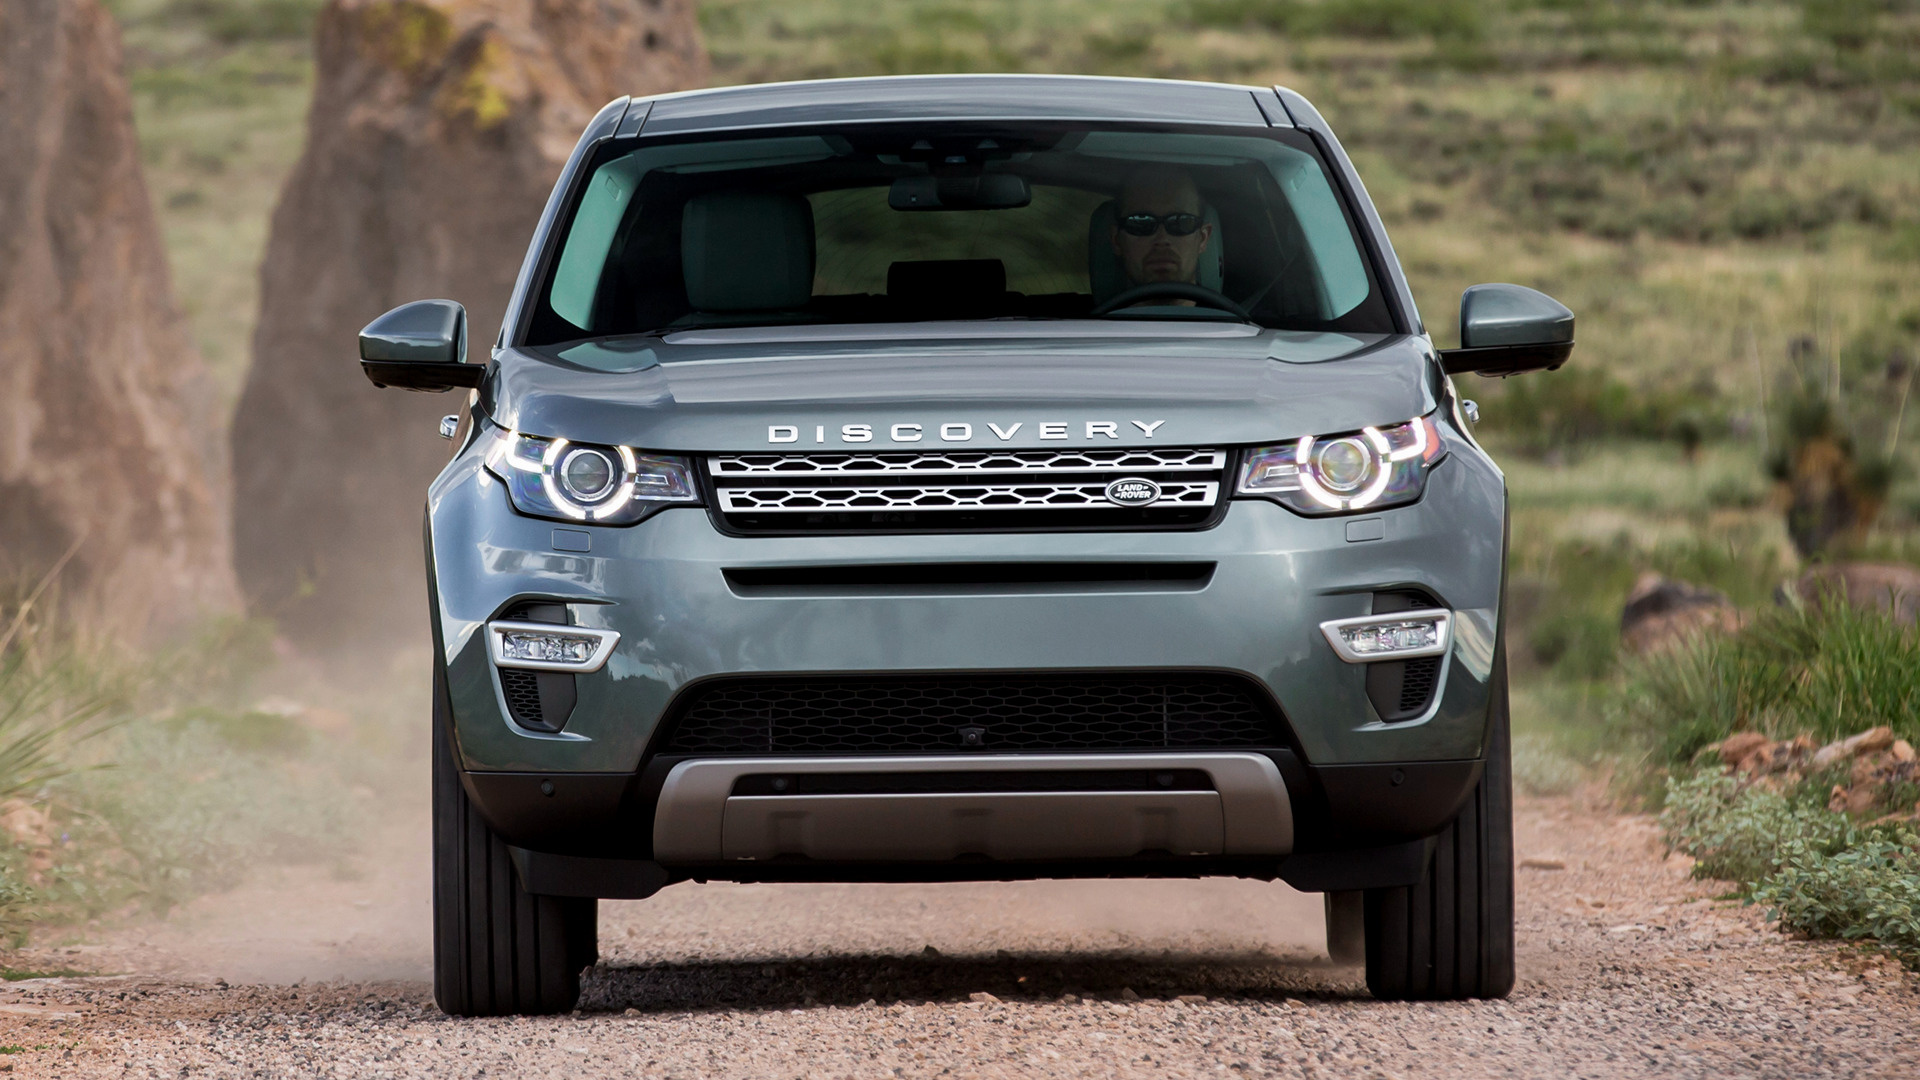 Discovery Sport Land Rover >> Land Rover Discovery Sport HSE Luxury (2015) Wallpapers and HD Images - Car Pixel